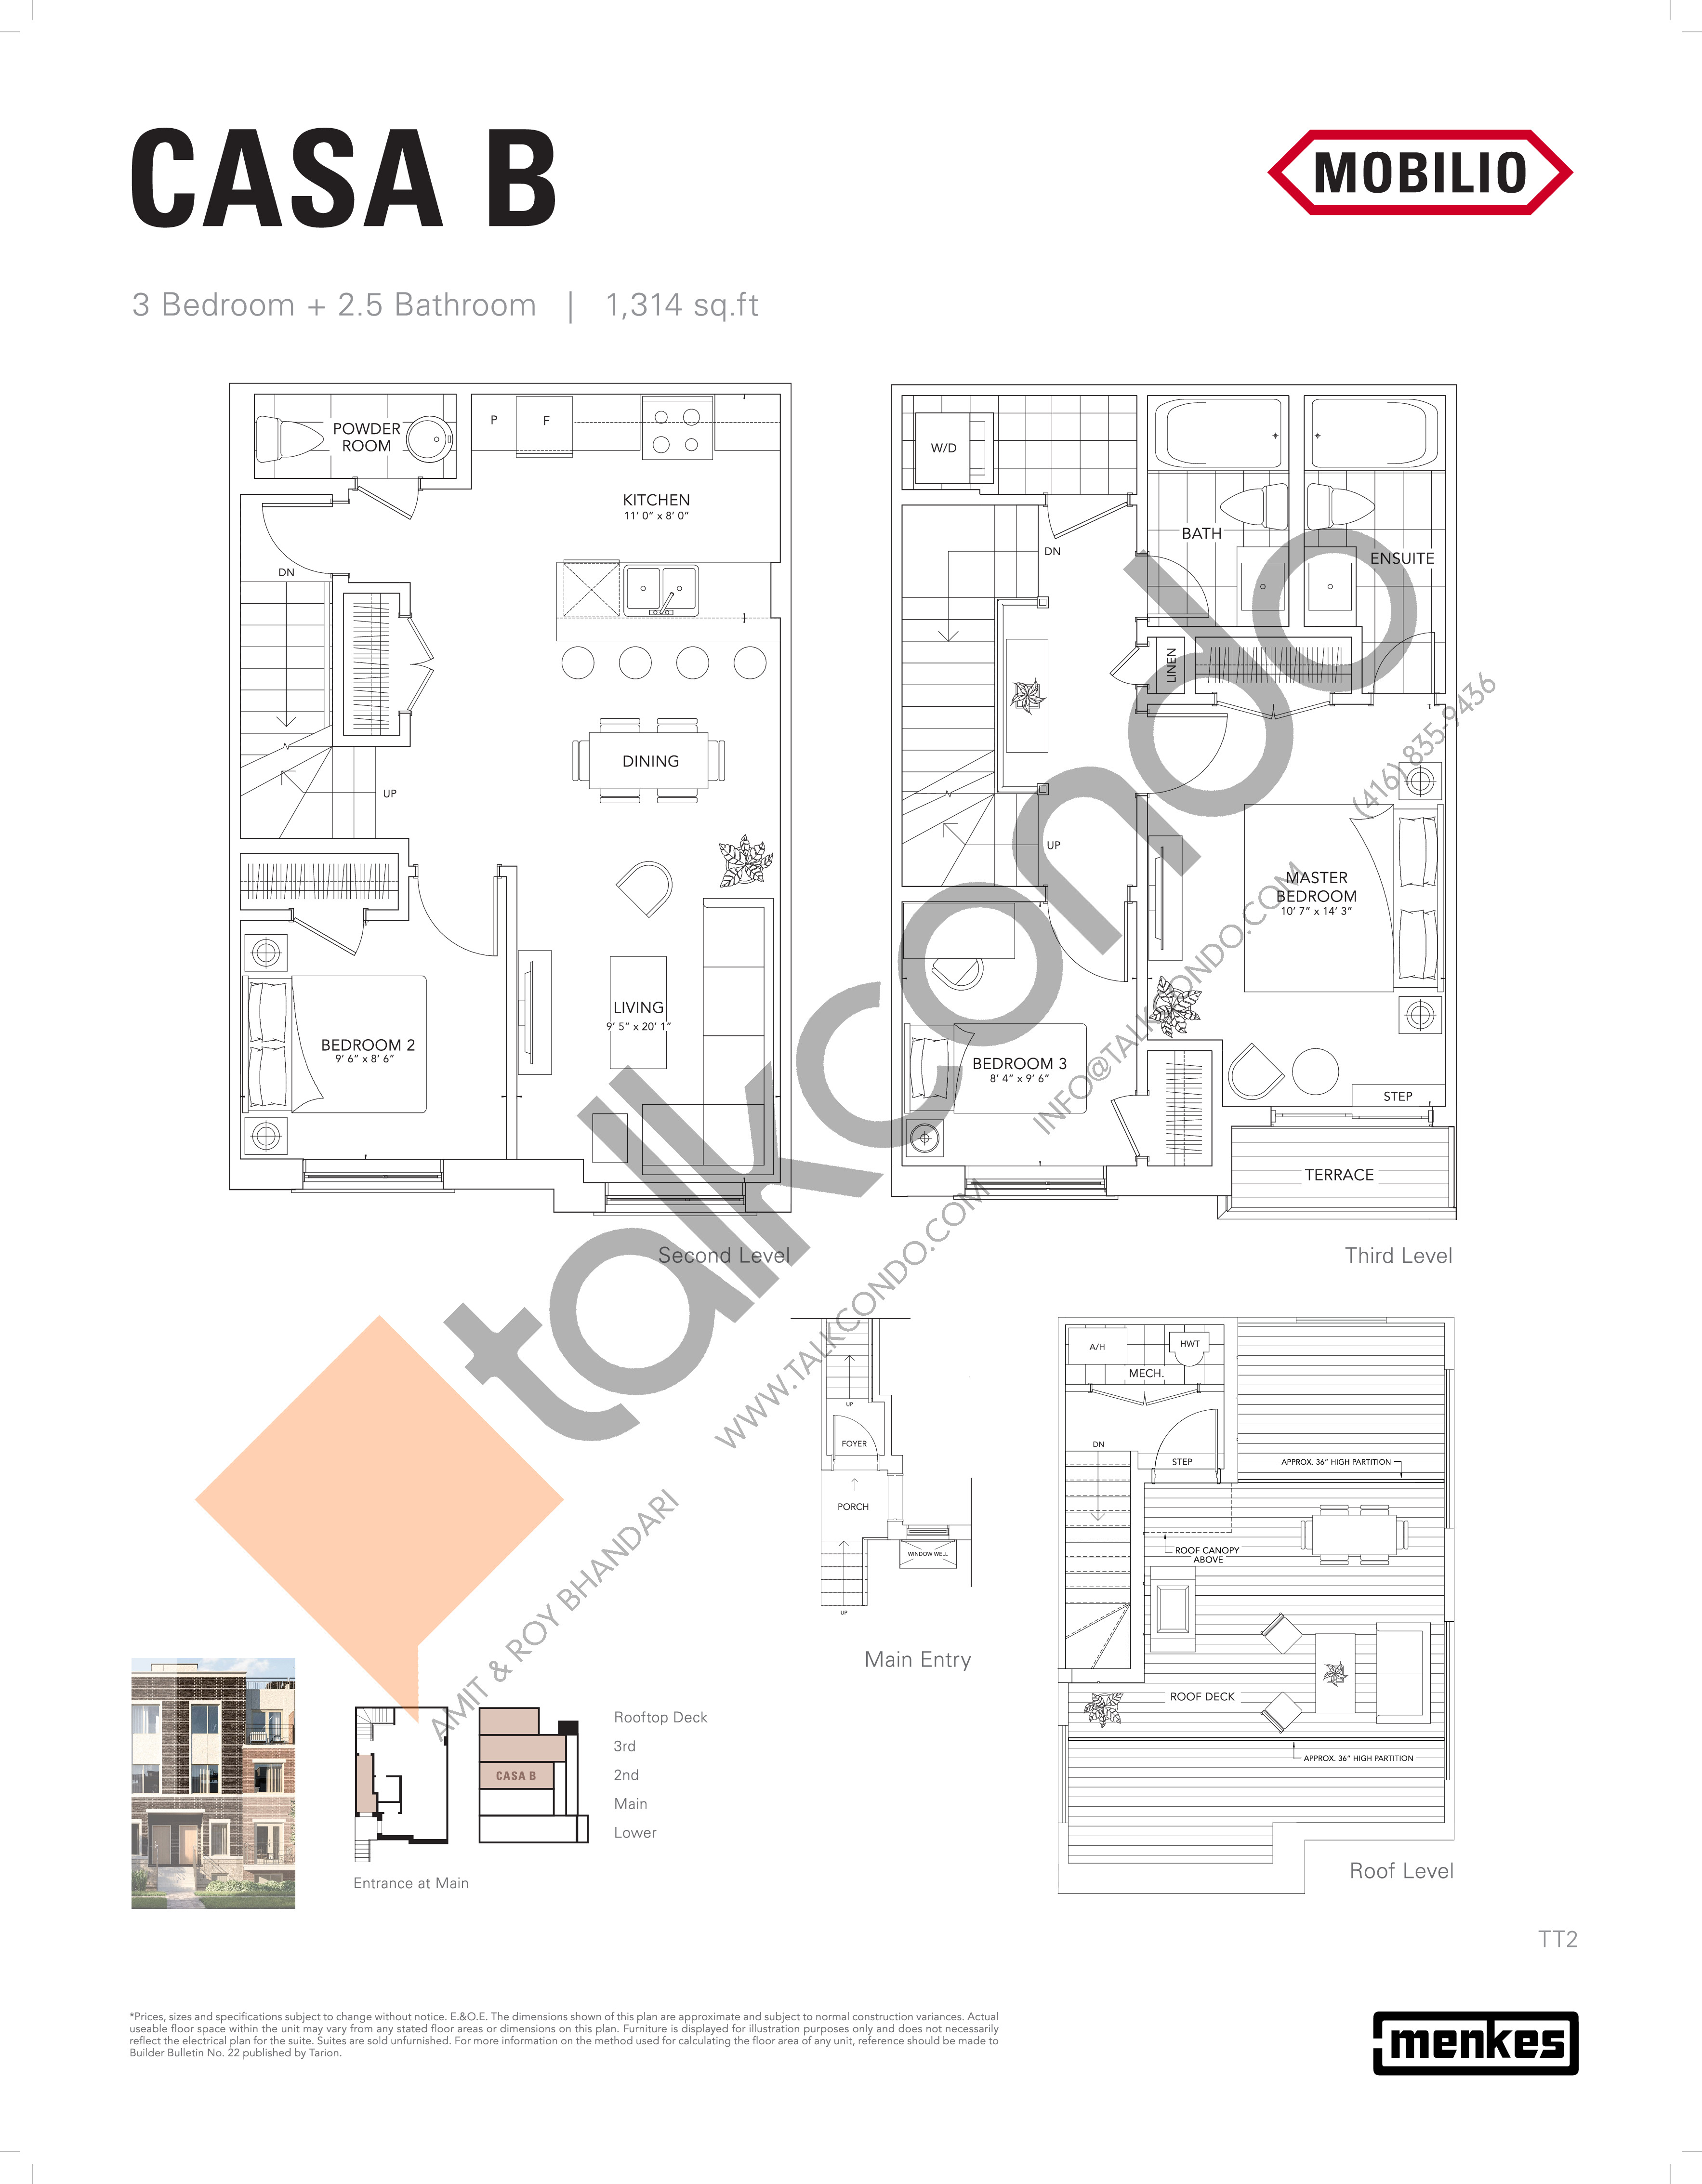 Casa B Floor Plan at Mobilio Townhomes - 1314 sq.ft